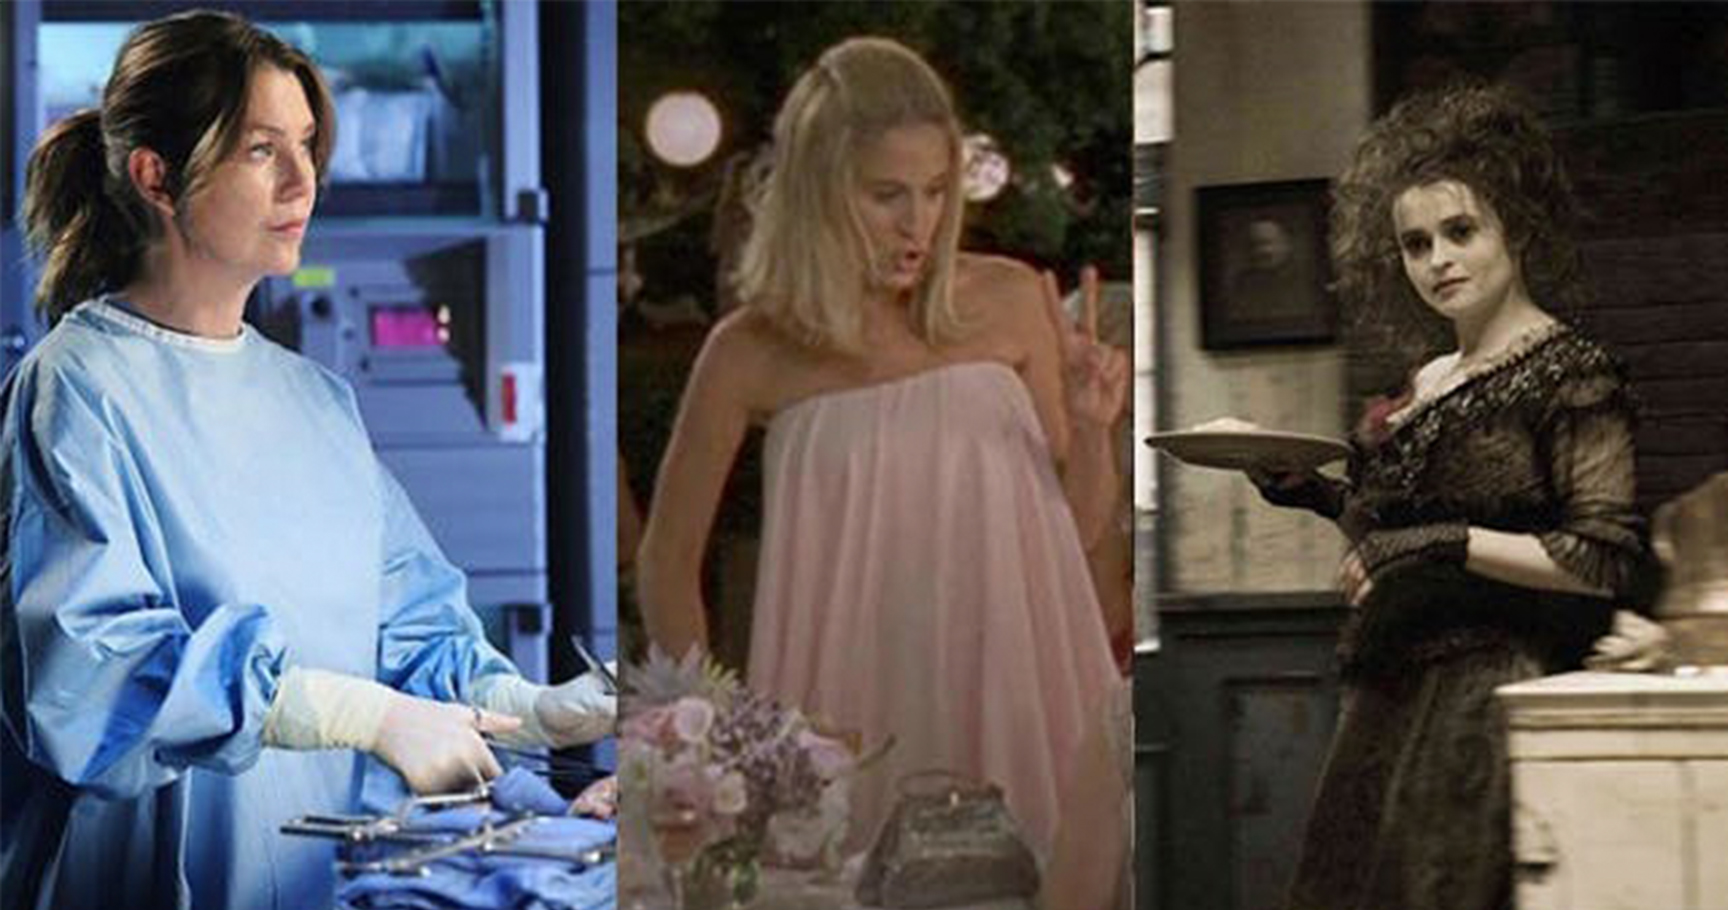 Pregnant On The Job: 15 Actresses Who Didn't Take Maternity Leave